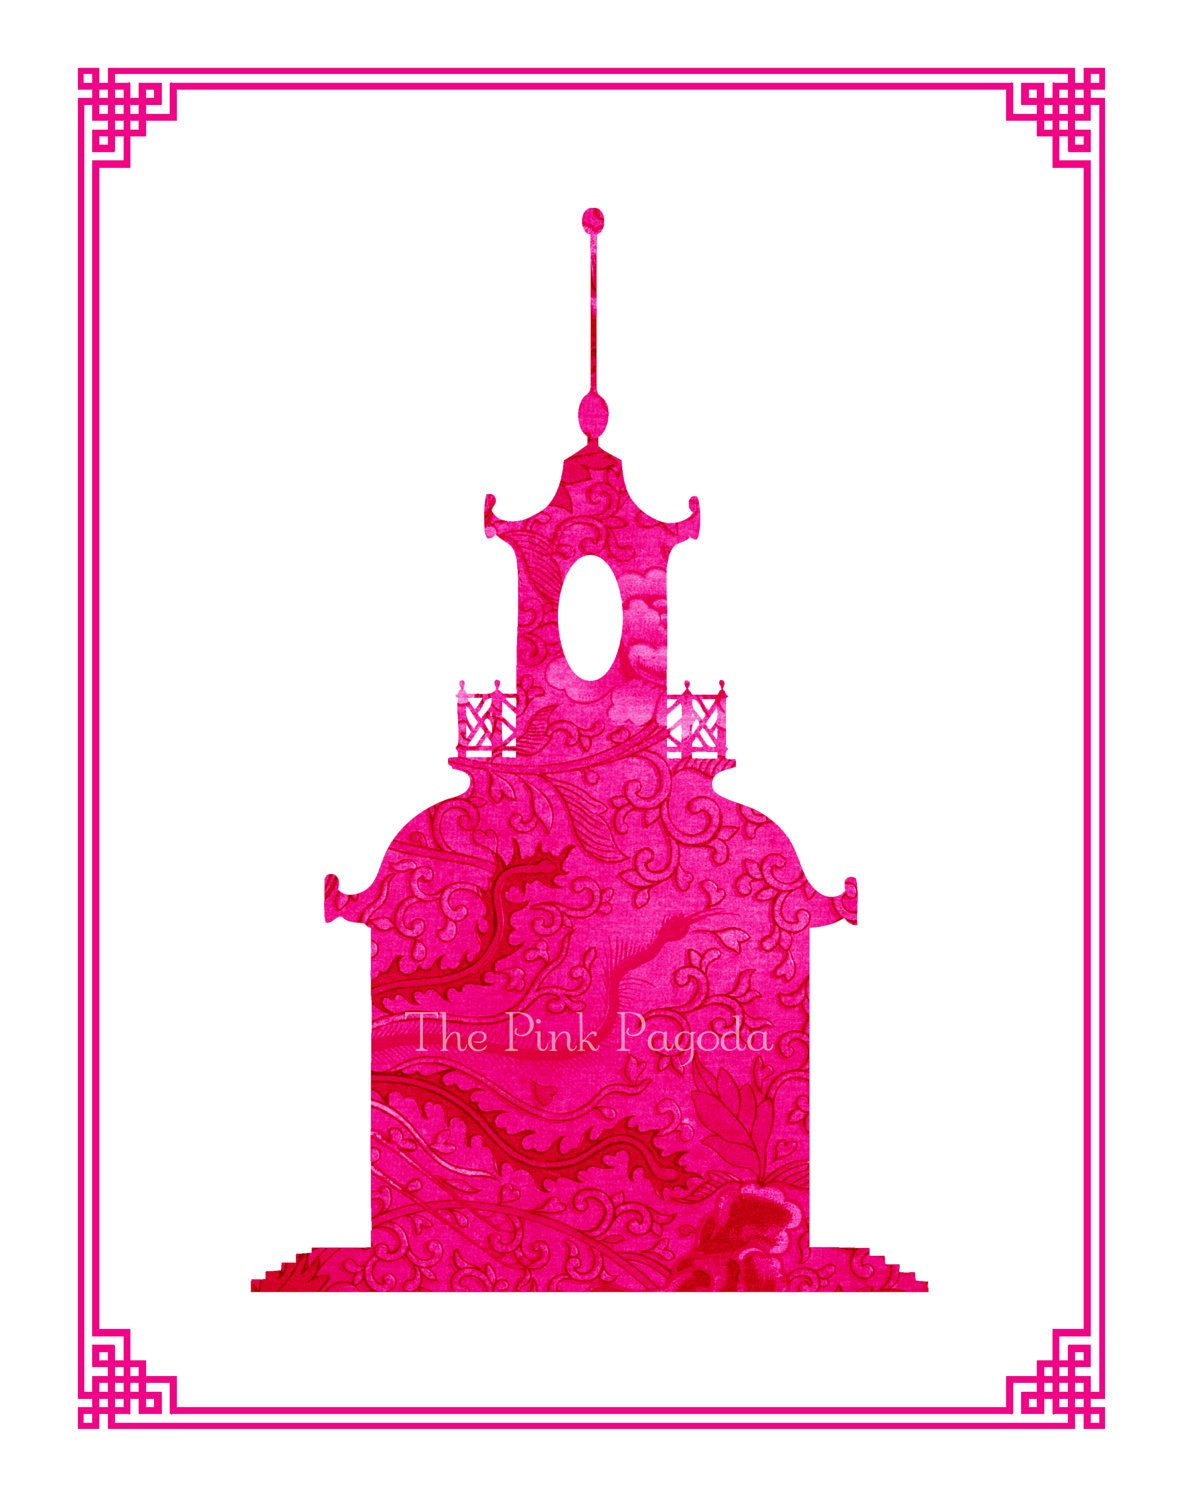 Chinoiserie Chic Limited Edition Pagoda Giclee 11x14 - thepinkpagoda